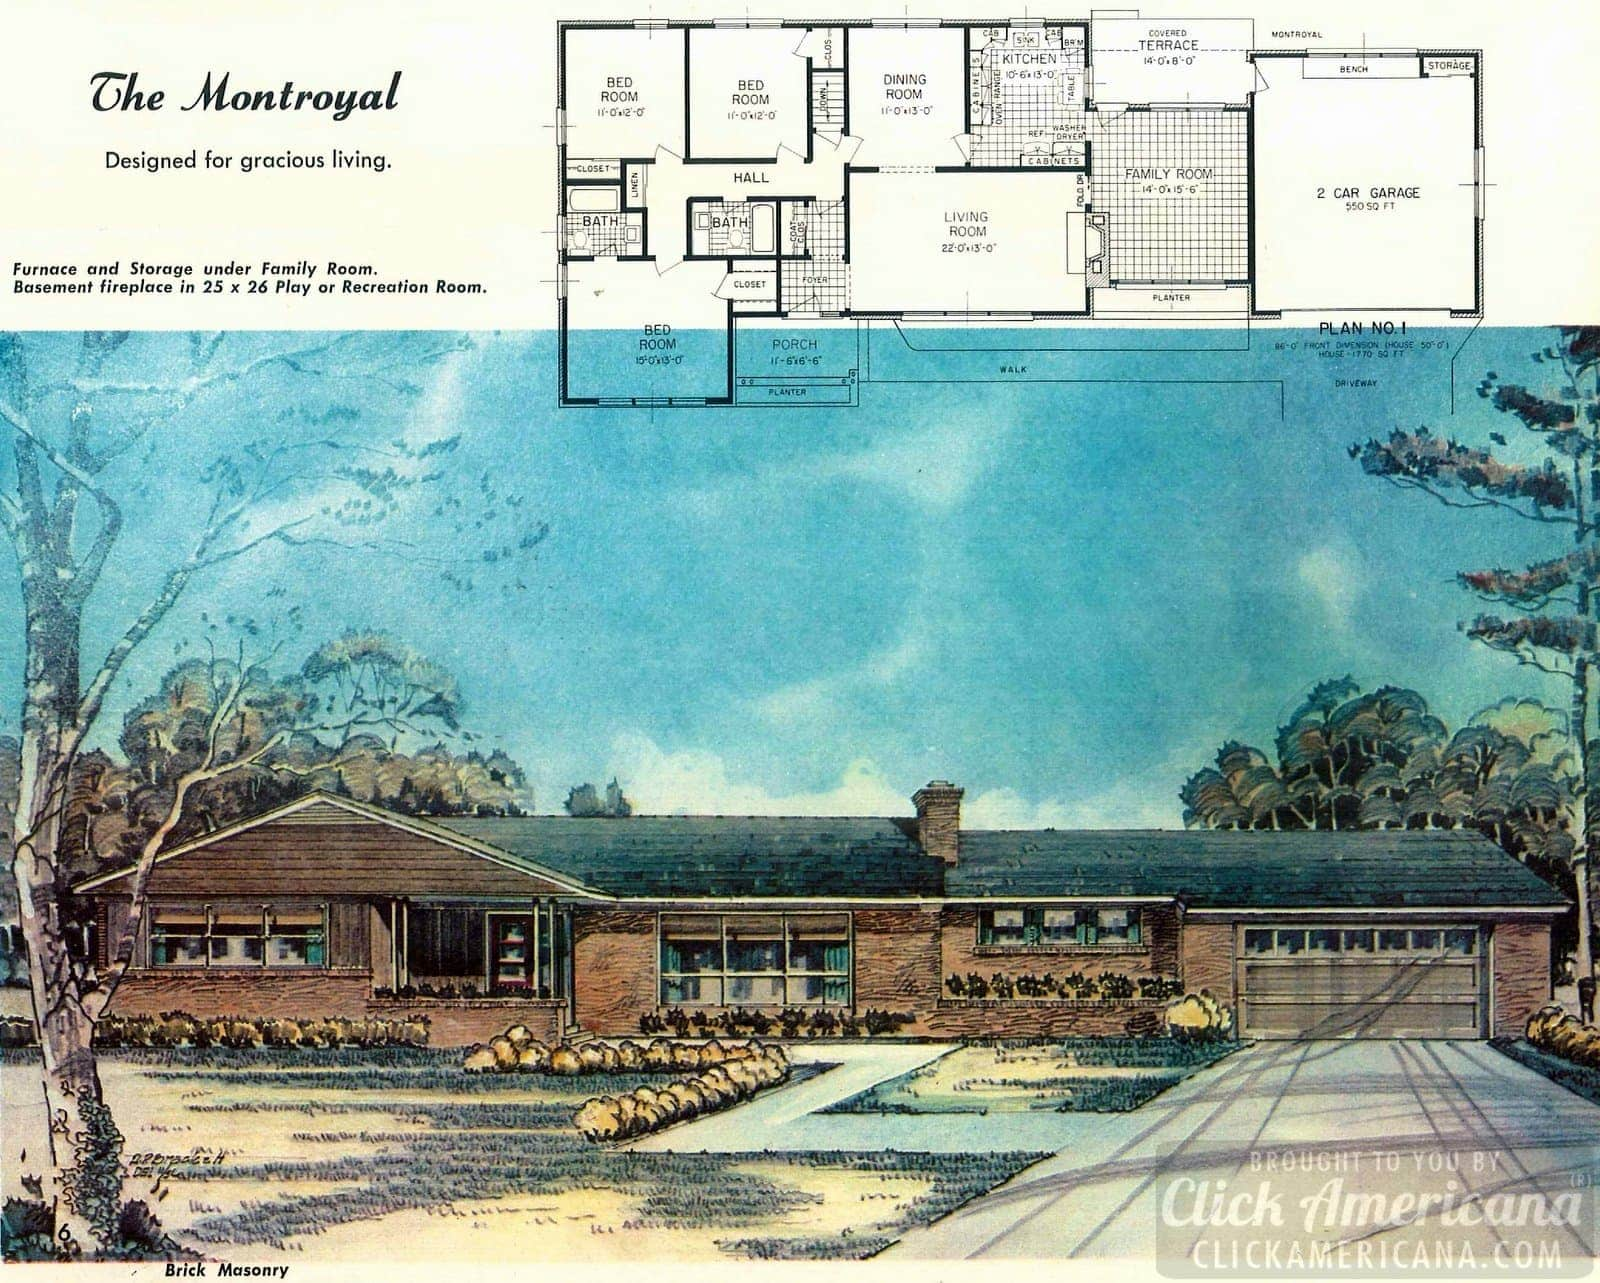 Residential design plans from 1958: The Montroyal